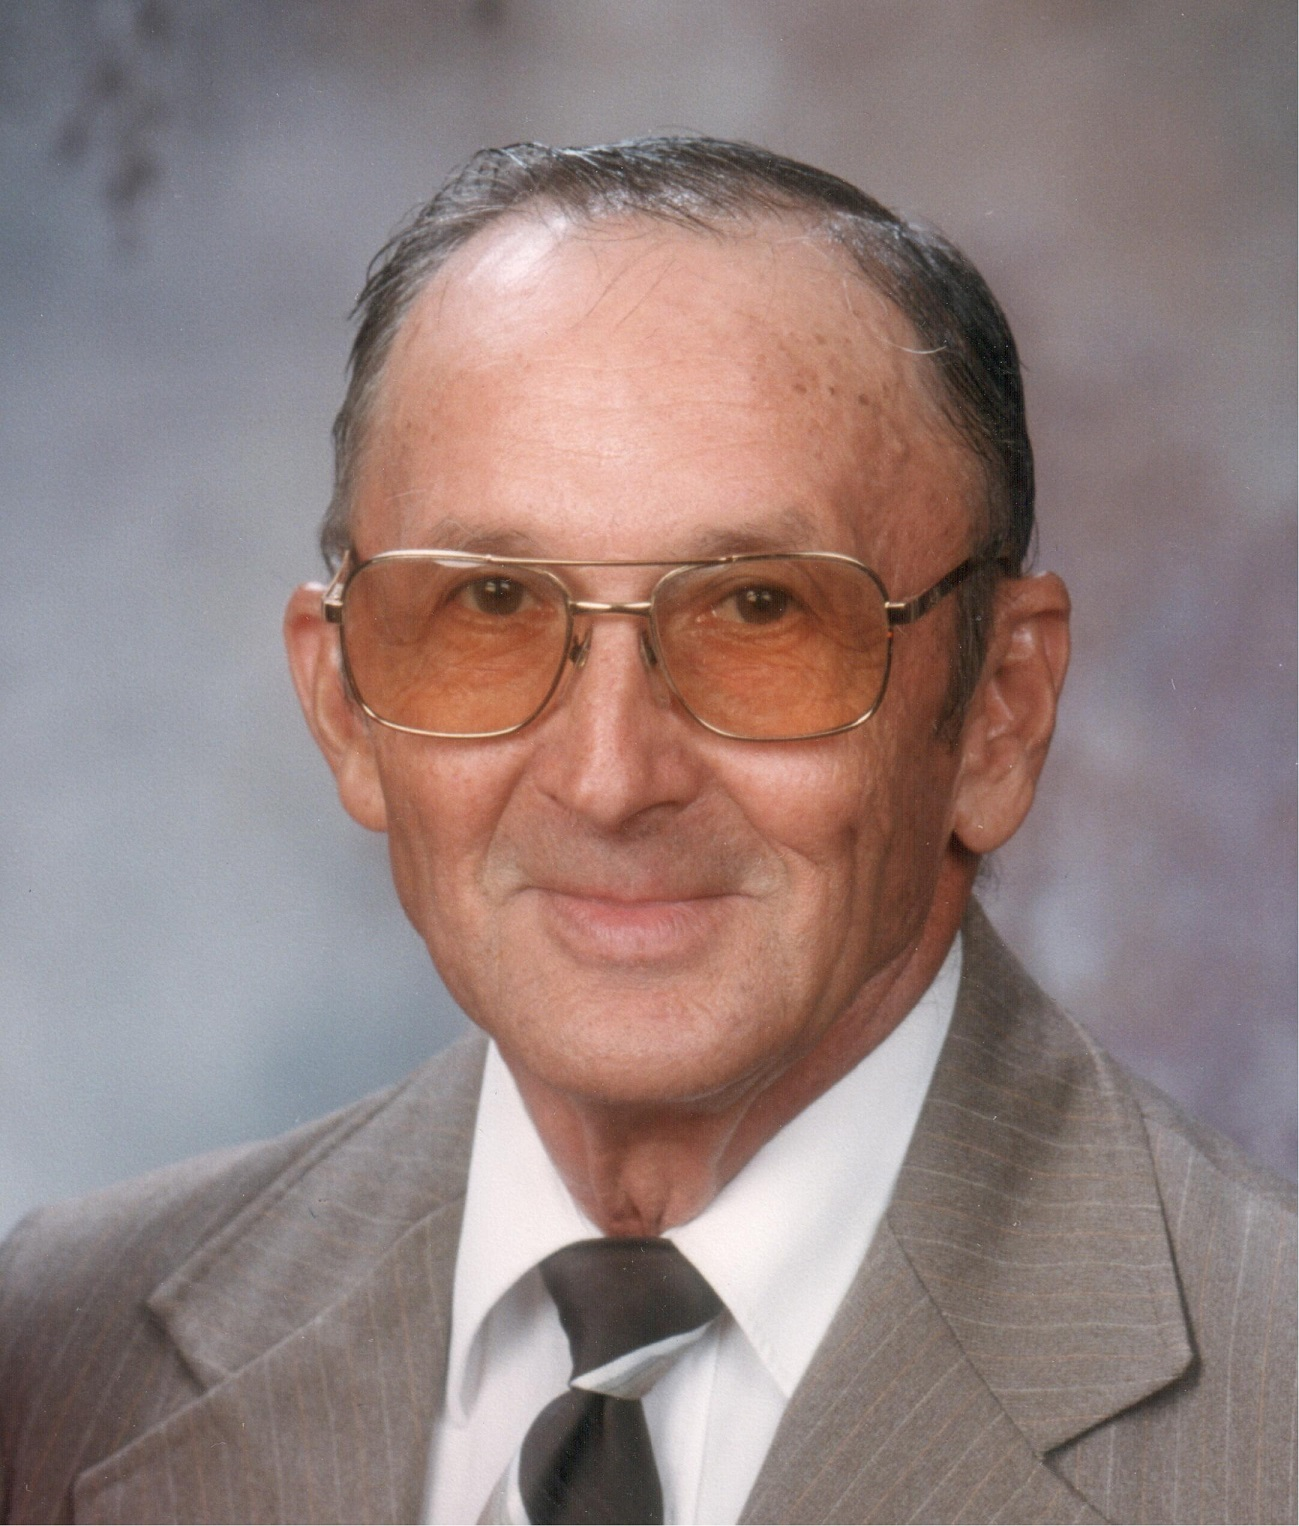 Lawrence A. Brosmer, age 92 of Schnellville